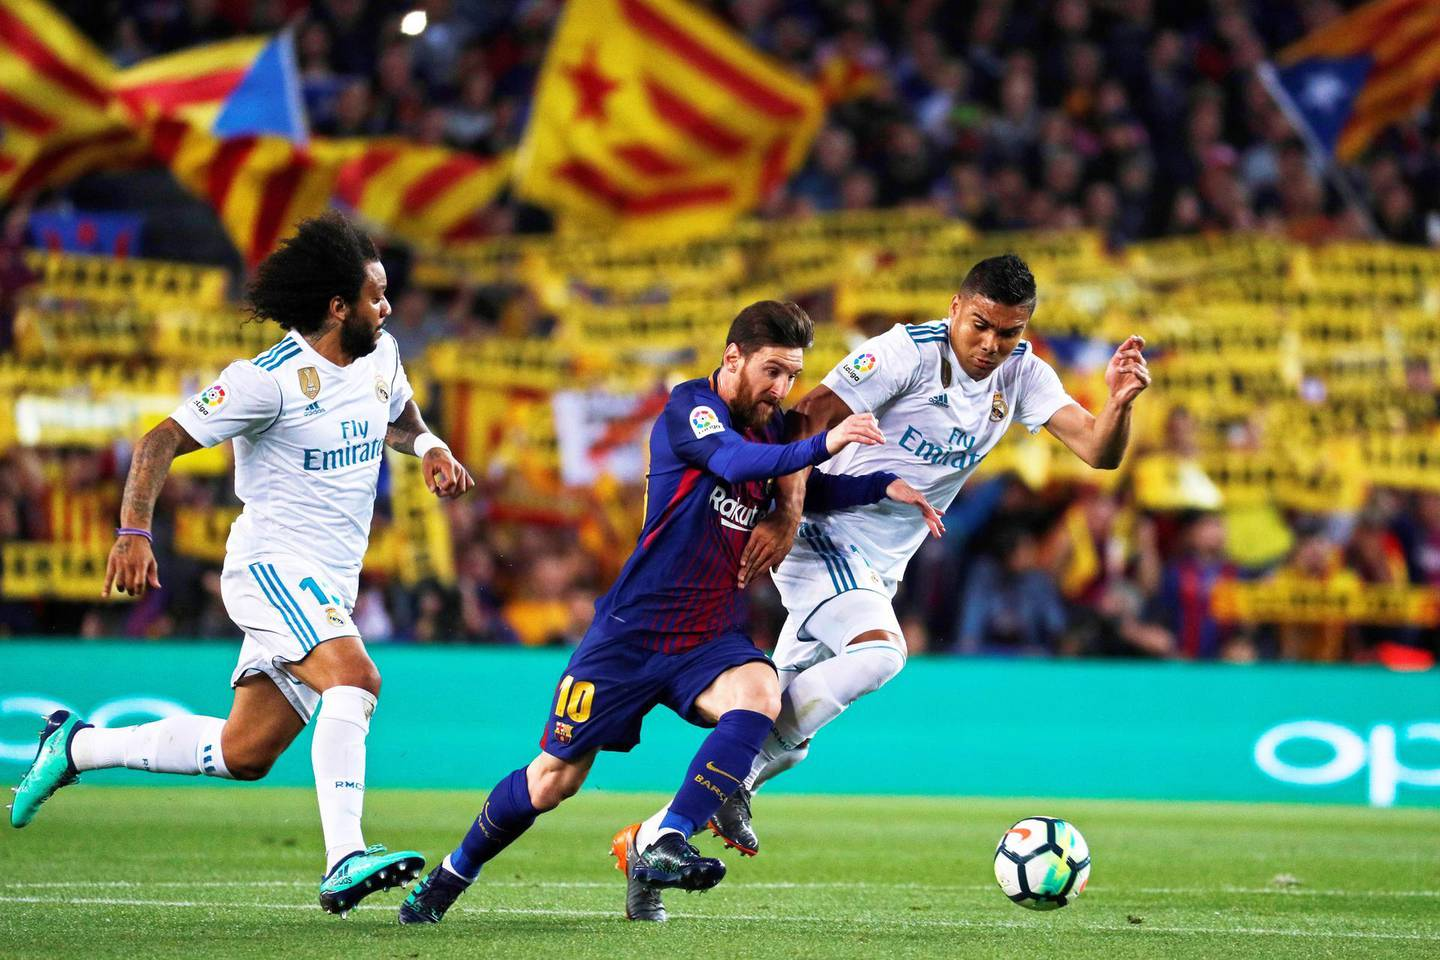 epaselect epa06715778 FC Barcelona's striker Lionel Messi (C) in action against Real Madrid players Casemiro (R) and Marcelo (L) during the Spanish Primera Division soccer match between FC Barcelona and Real Madrid at Camp Nou in Barcelona, Spain, 06 May 2018.  EPA/ALEJANDRO GARCIA